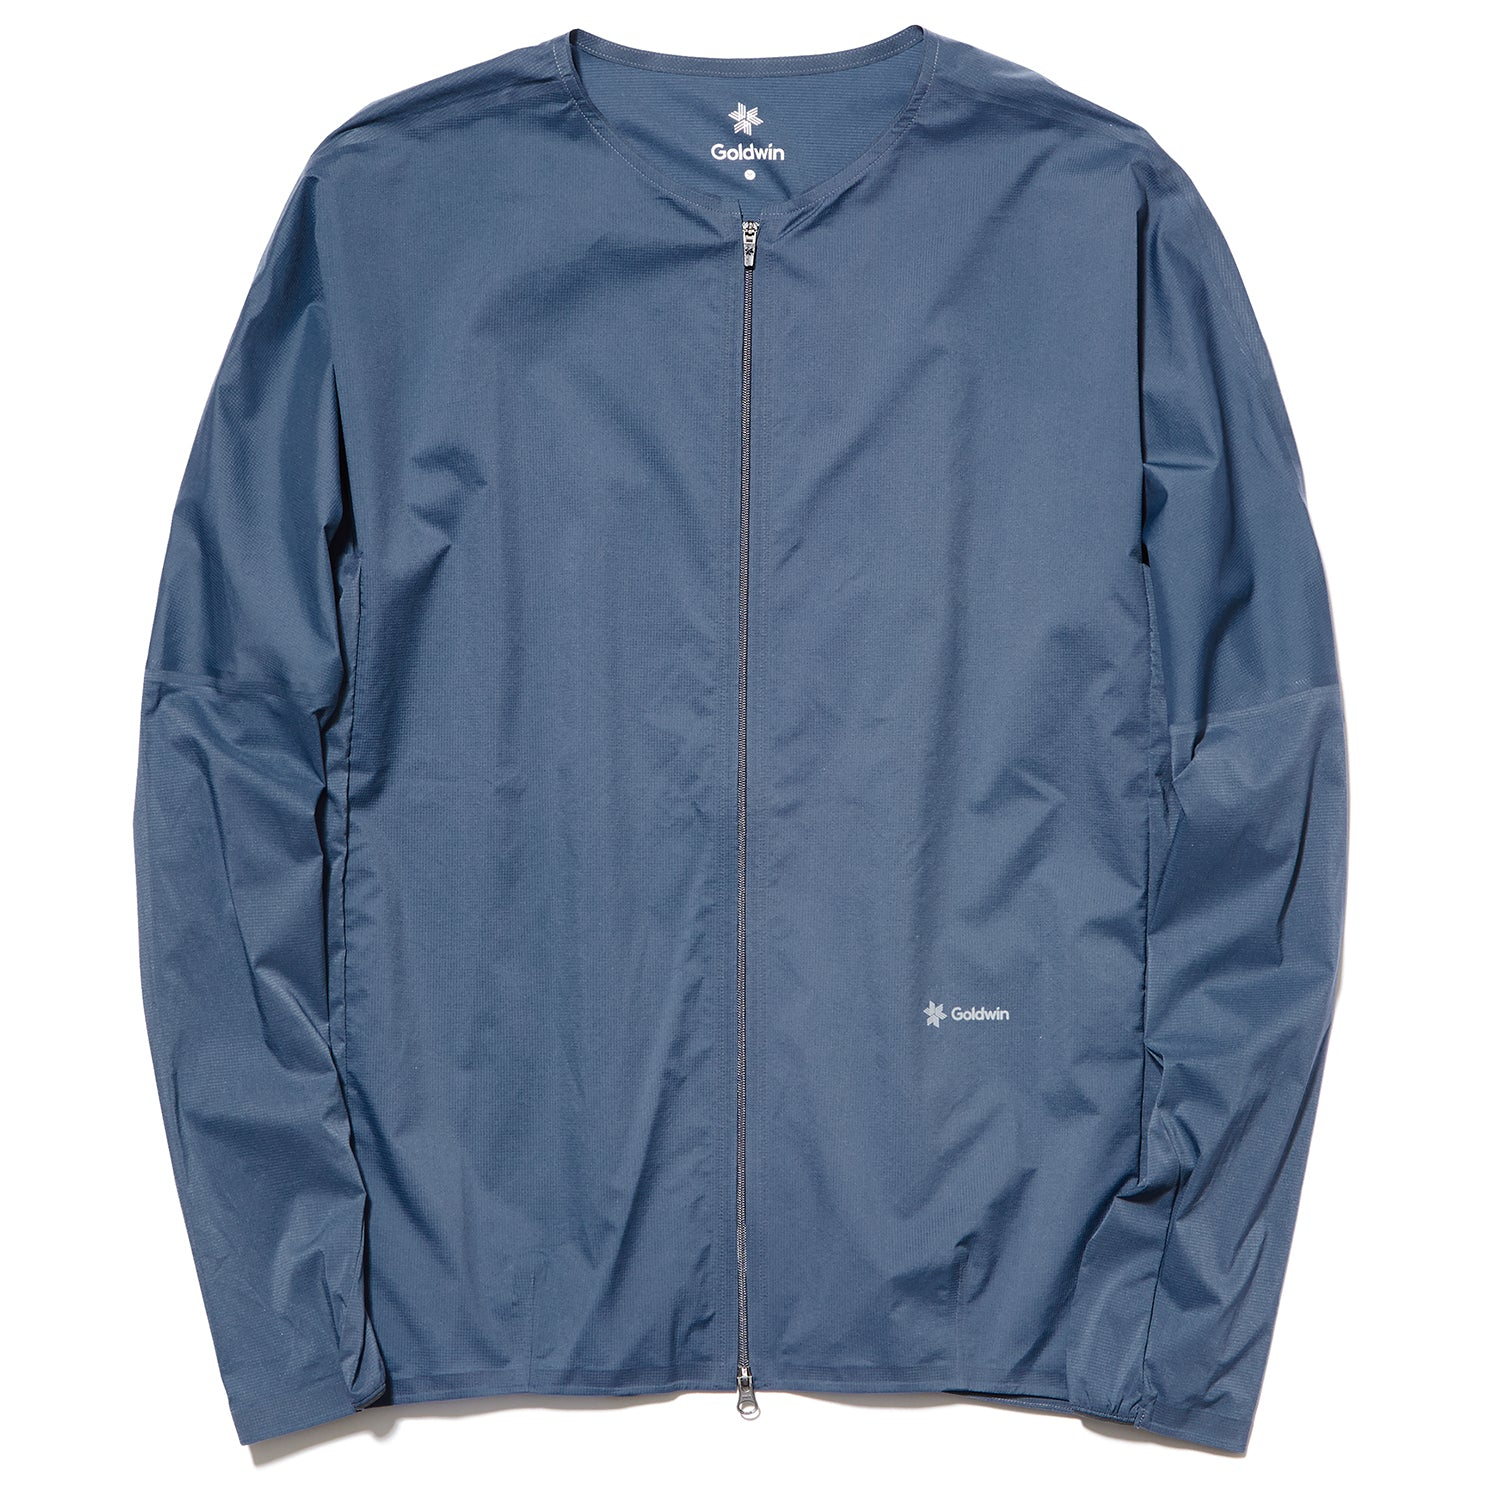 WOVEN COMPACT JACKET GRAPHITE NAVY